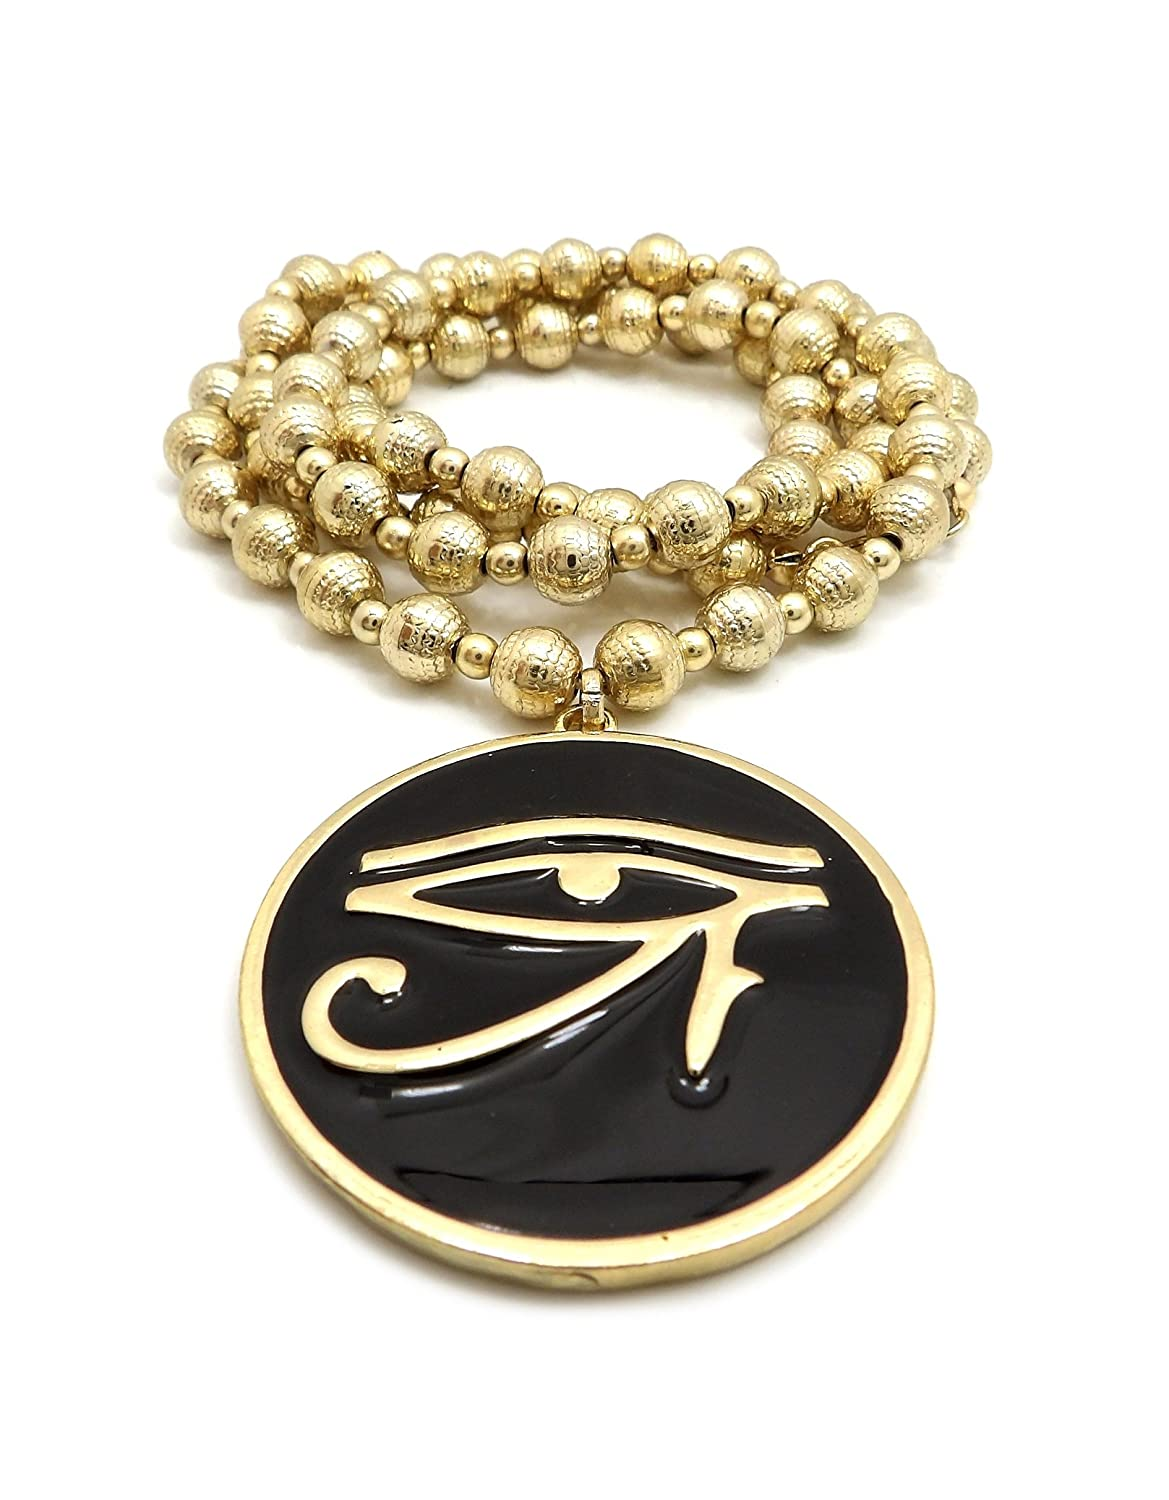 Eye of Heru Pendant 8mm 30 CCB Bead Necklace in Gold Tone Anubis Fist in Africa